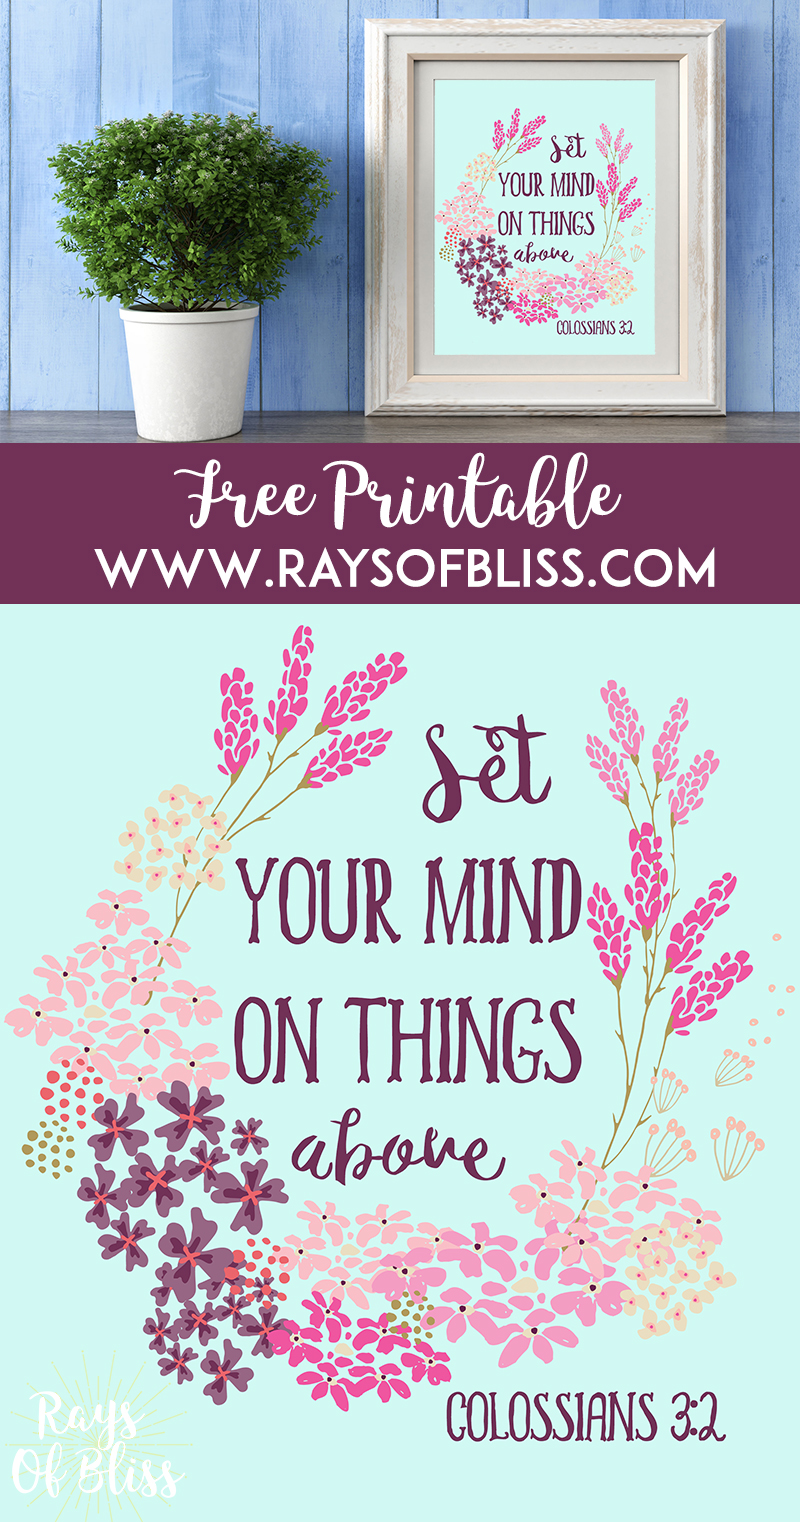 Set Your Mind On Things Above Colossians 3:2 - Bible Verse Free Printable